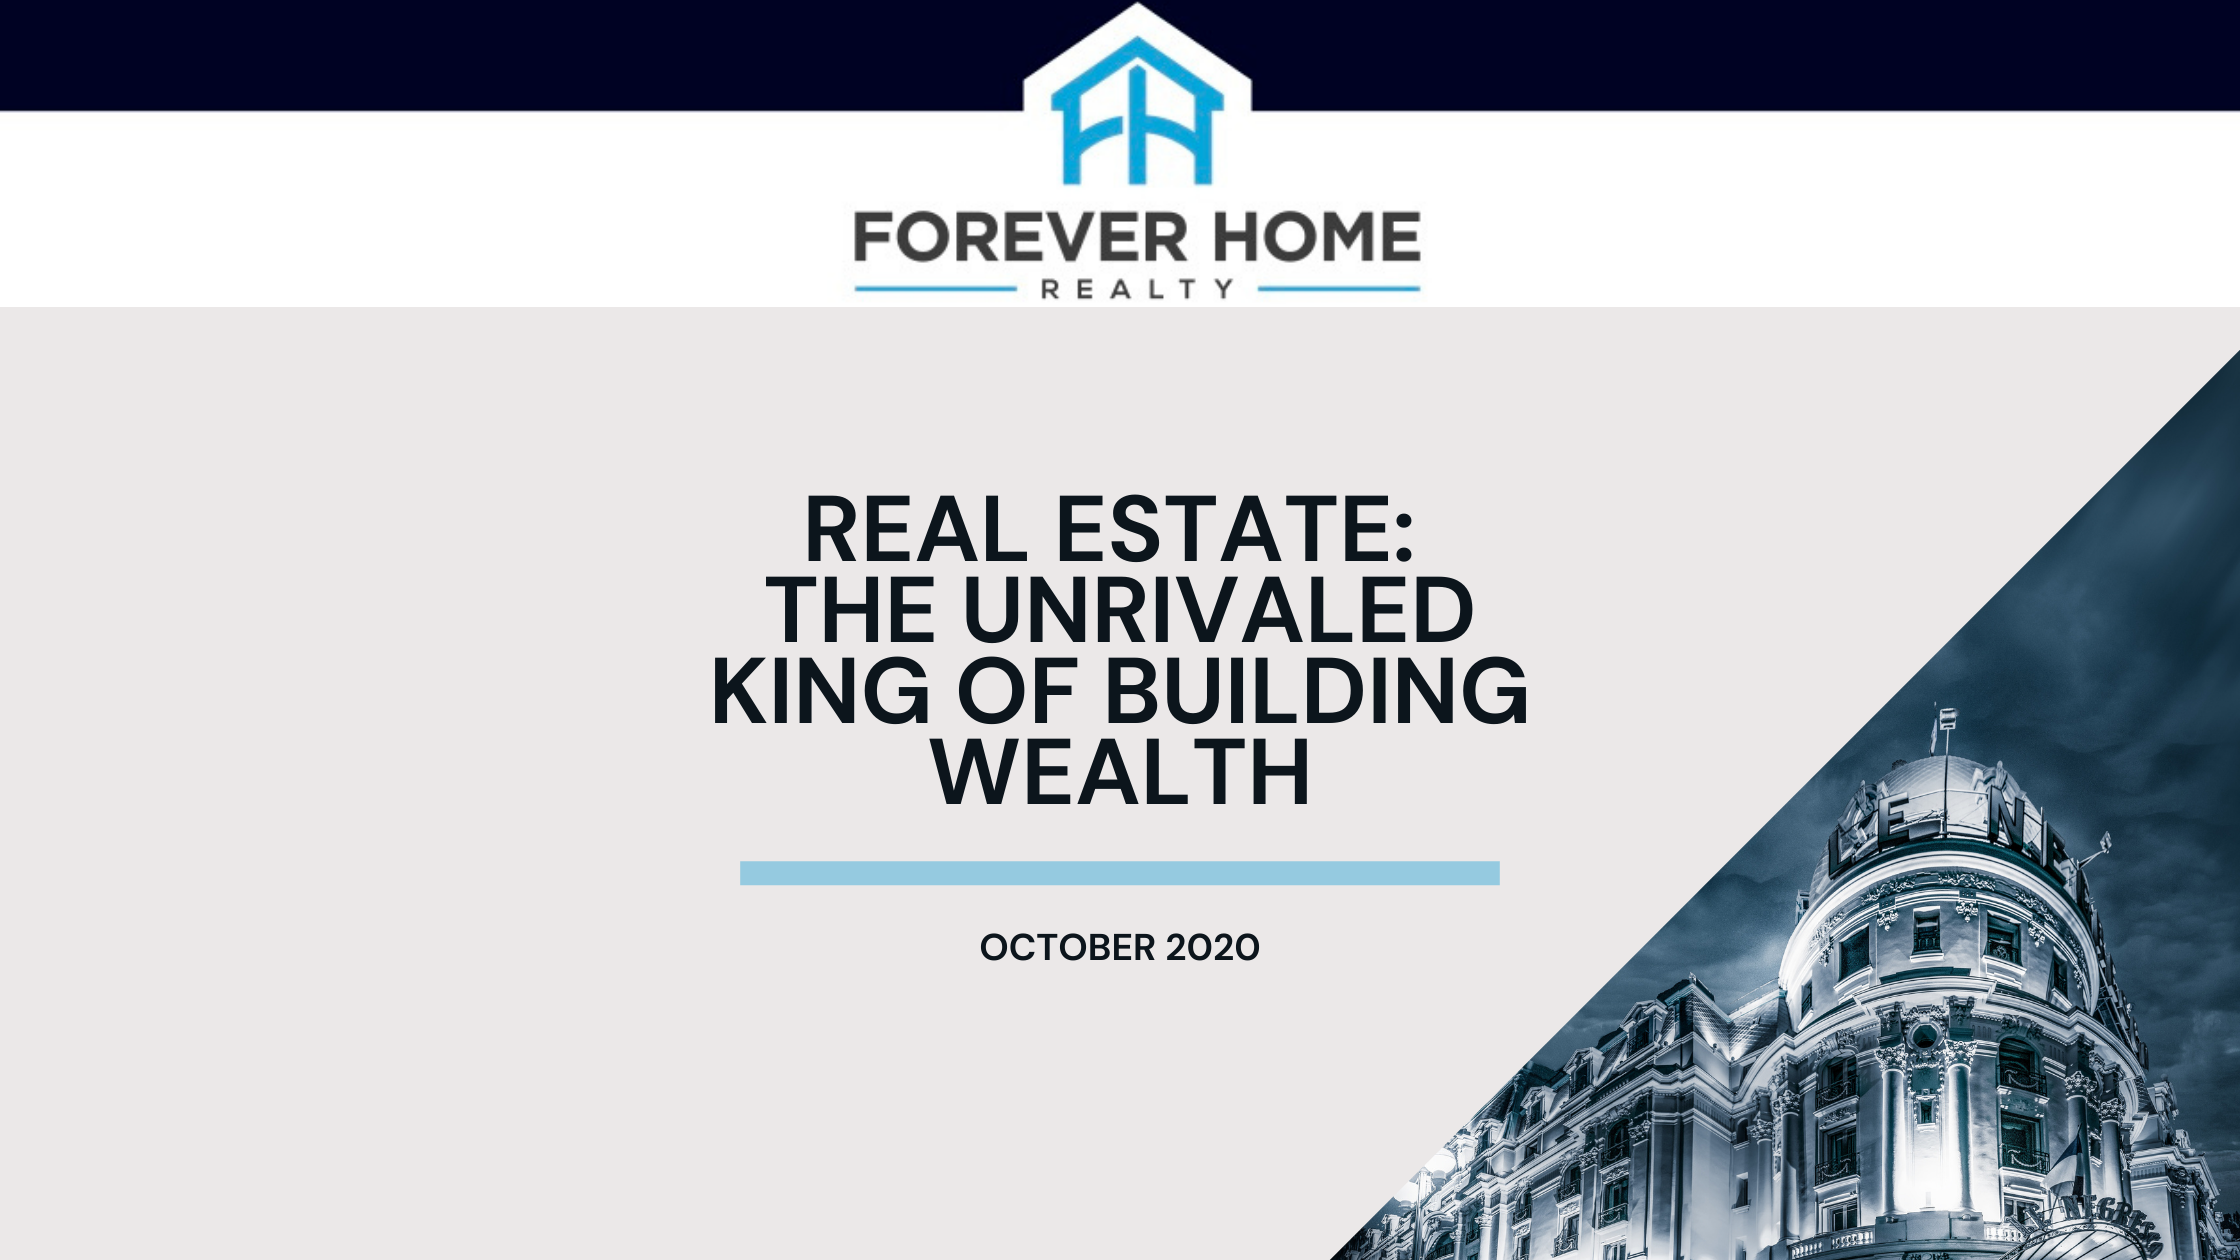 Real Estate: The Unrivaled King of Building Wealth | Nick Devitte Forever Home LV